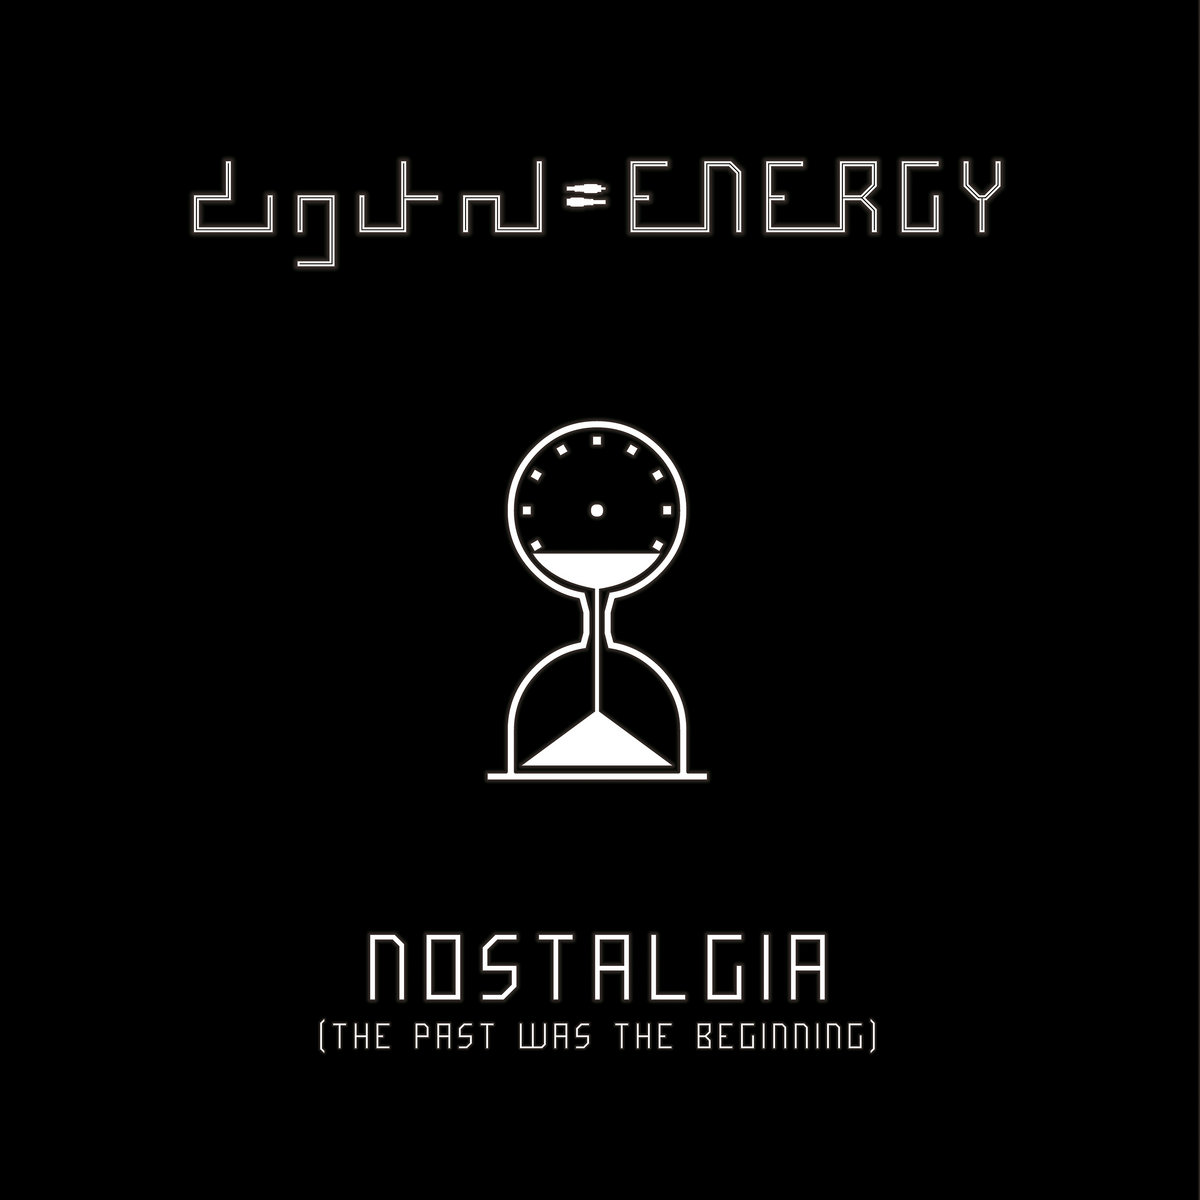 Digital Energy – Nostalgia (The Past Was The Beginning) (2020) [FLAC]